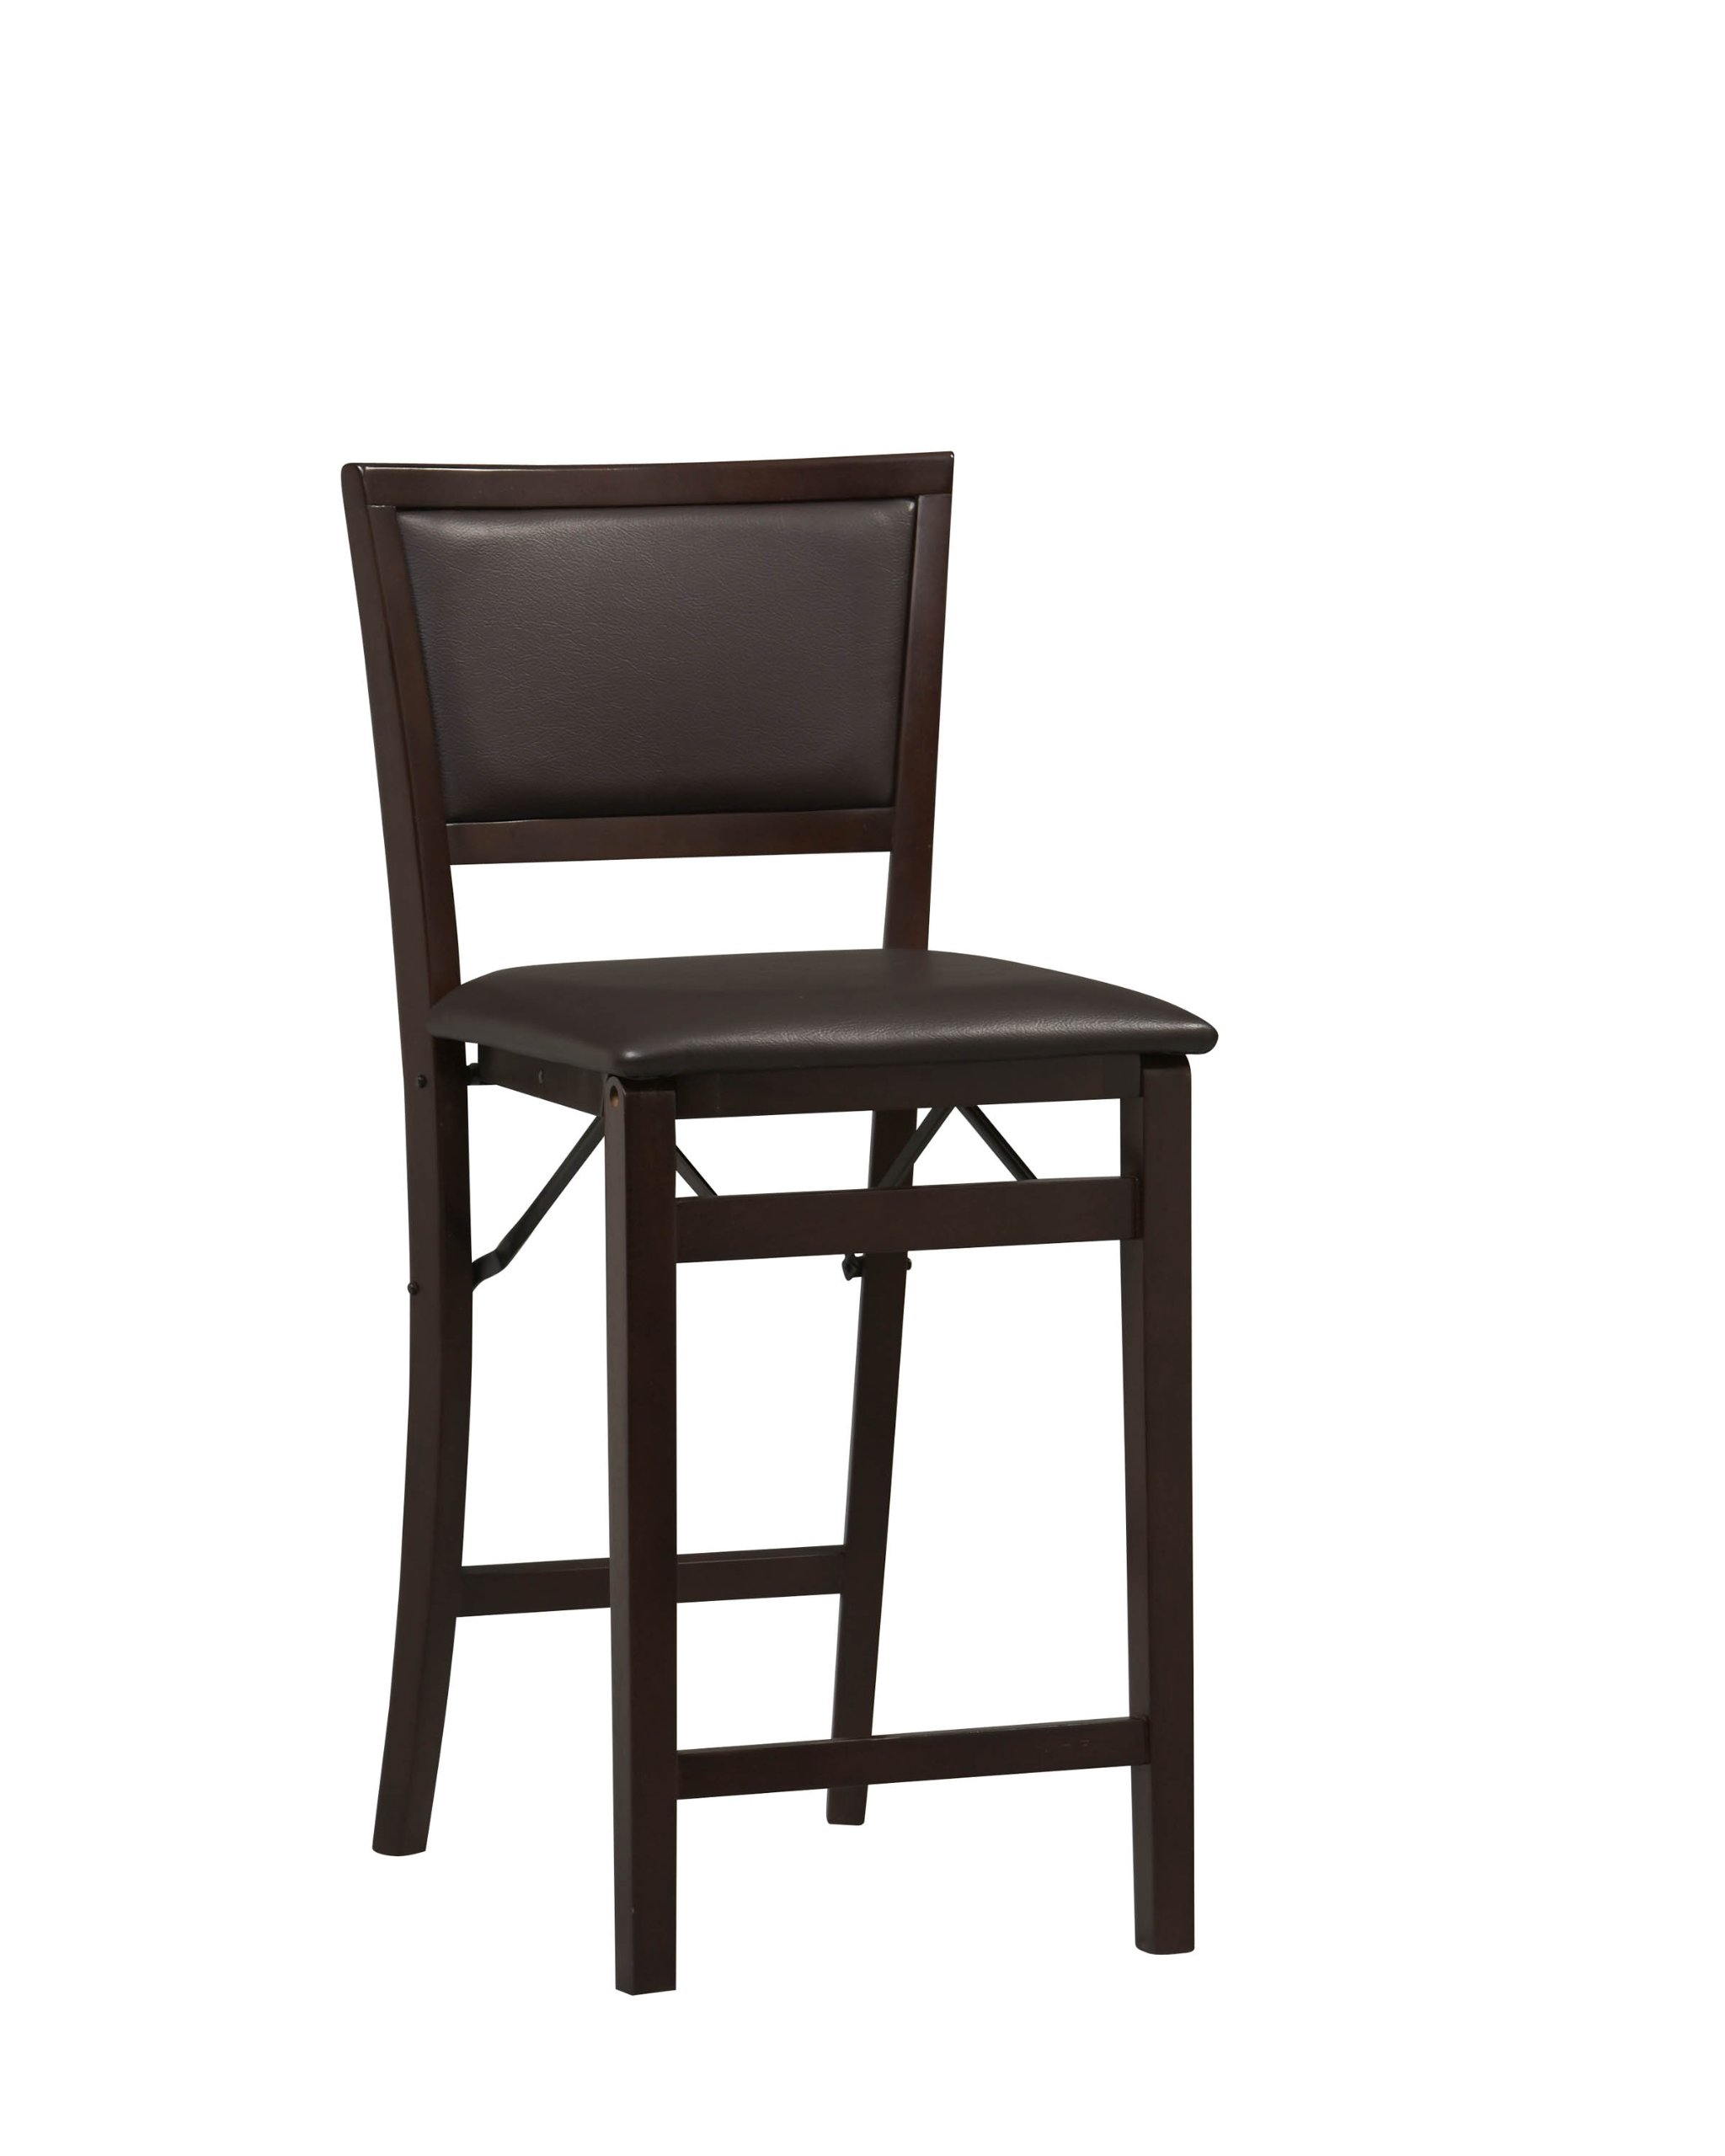 Linon Home Decor Keira Pad Back Folding Counter Stool, 24-Inch by Linon Home Dcor